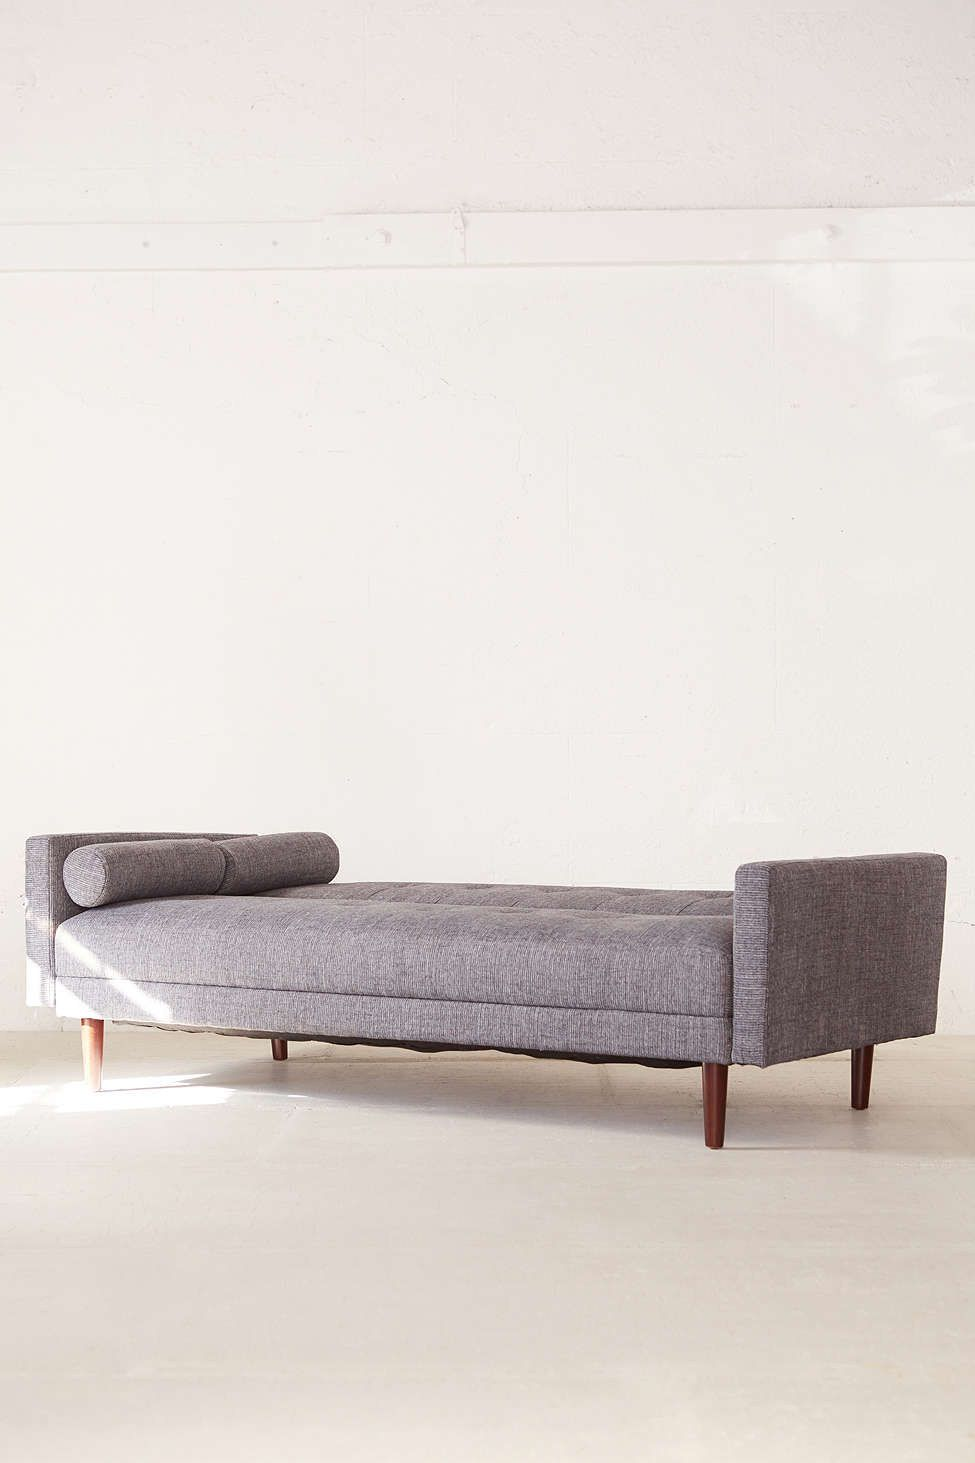 This Fold Down Sleeper Sofa That Is Made With Tweed Fabric